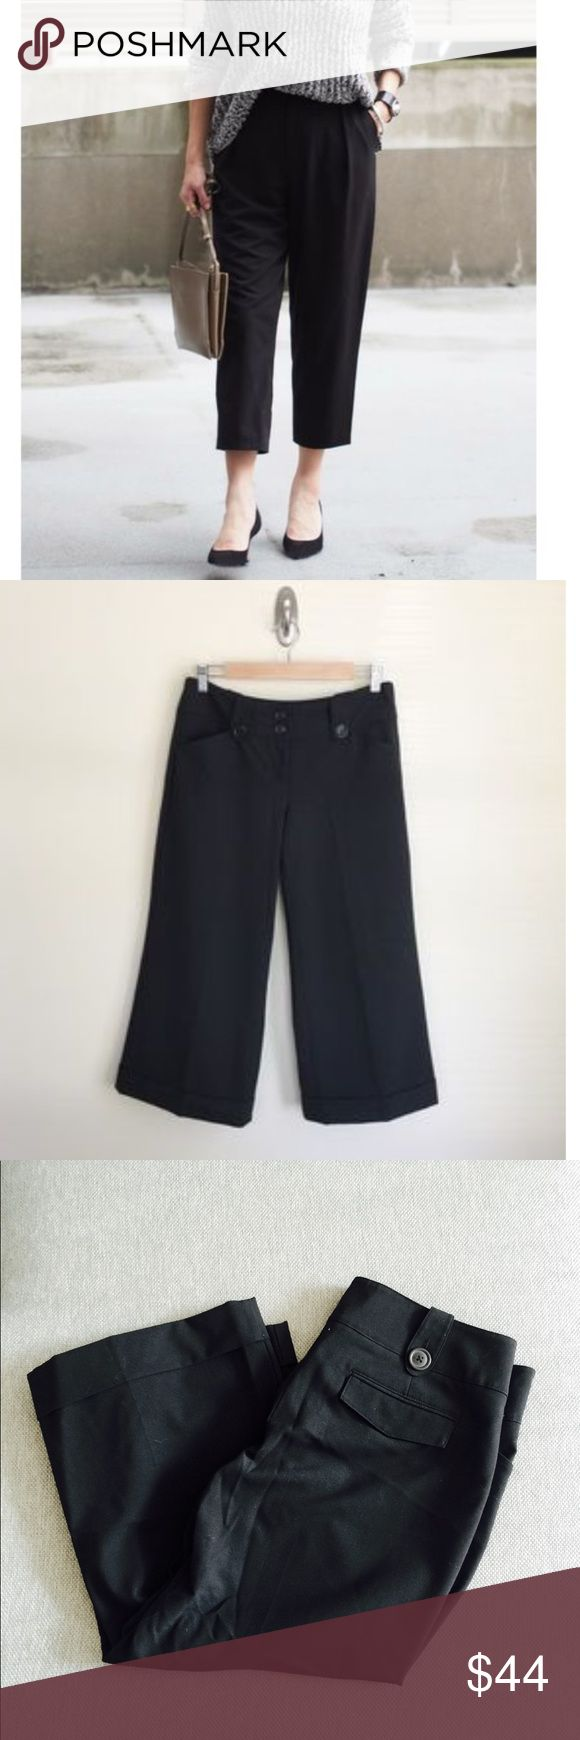 ❗️Express Design Editor Wide Leg Capris MSRP $98 ❗️Express Design Studio Editor Wide Leg Black Capris. Retails $98. Size 10 great condition! Cover photo for styling ideas only. Considering offers feel free to make one! OR, Buy 1 item at listed price, get 2nd item of equal/ lesser value FREE on bundles! All must go--Fast shipping with my Fall Clearout sale ;-) Express Pants Capris